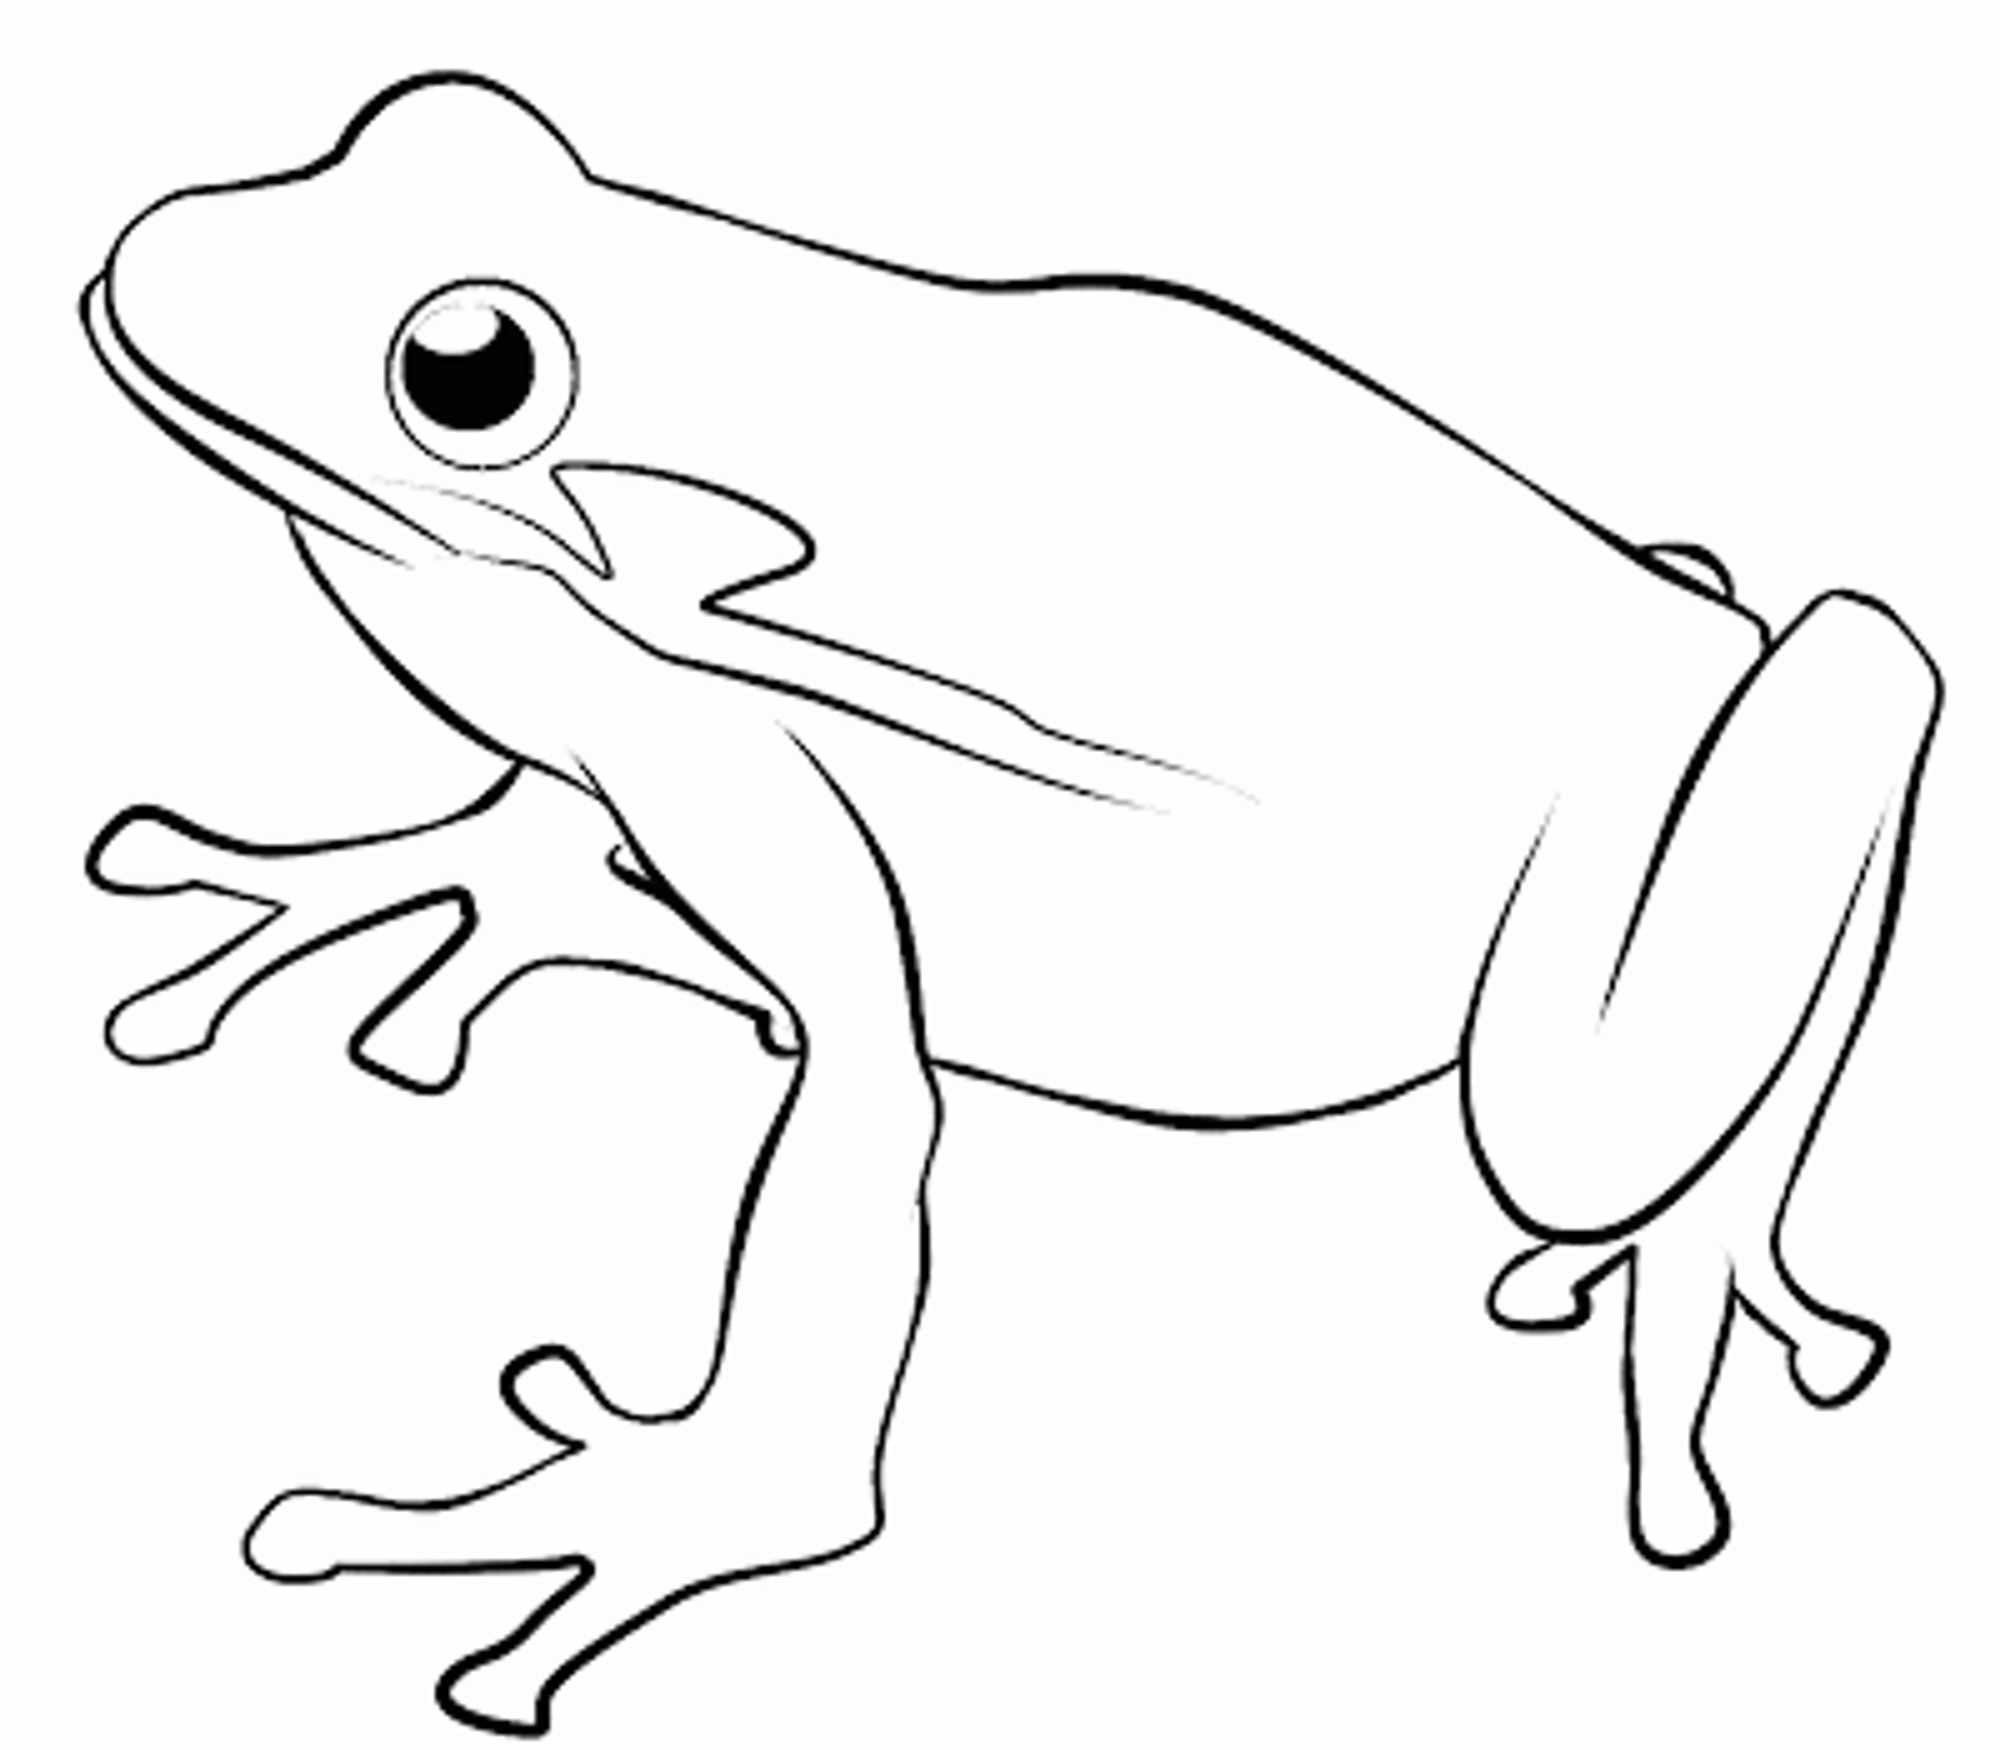 2000x1750 Coloring Page Life Cycle Of A Frog Free Draw To Color